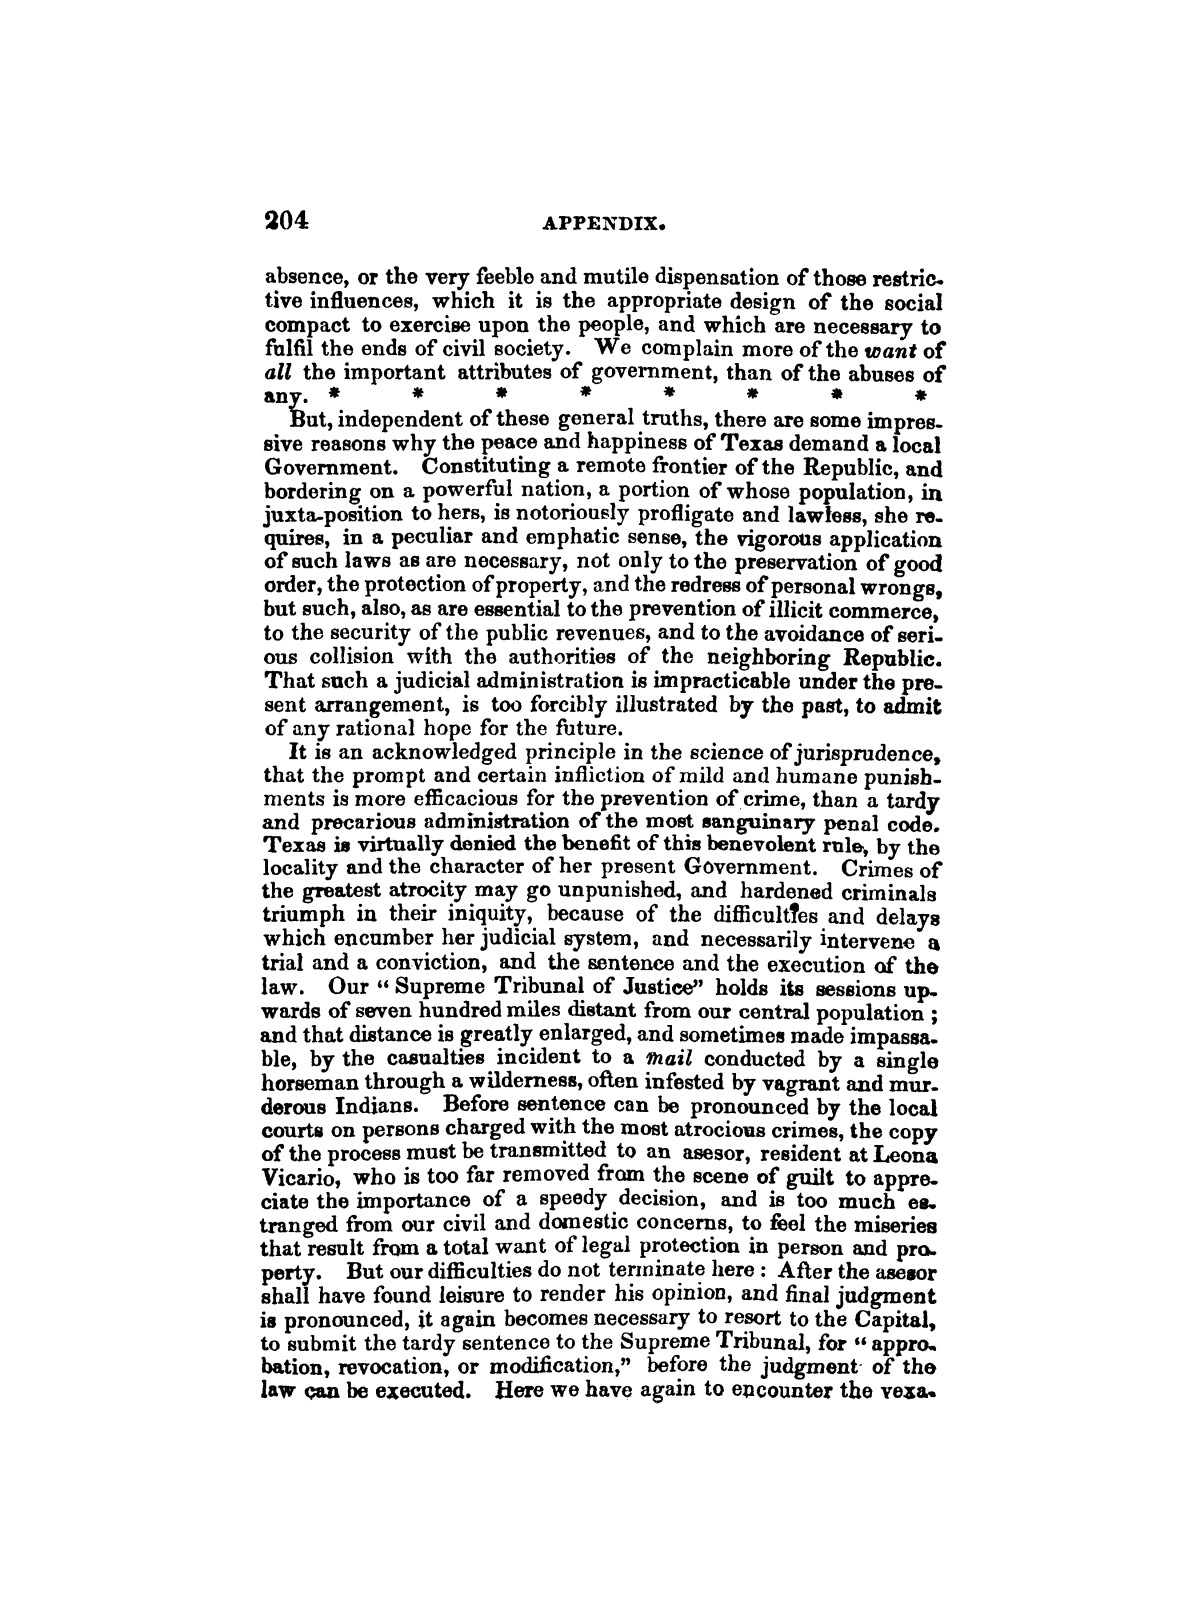 History of the revolution in Texas, particularly of the war of 1835 & '36; together with the latest geographical, topographical, and statistical accounts of the country, from the most authentic sources. Also, an appendix. By the Rev. C. Newell.                                                                                                      [Sequence #]: 216 of 227